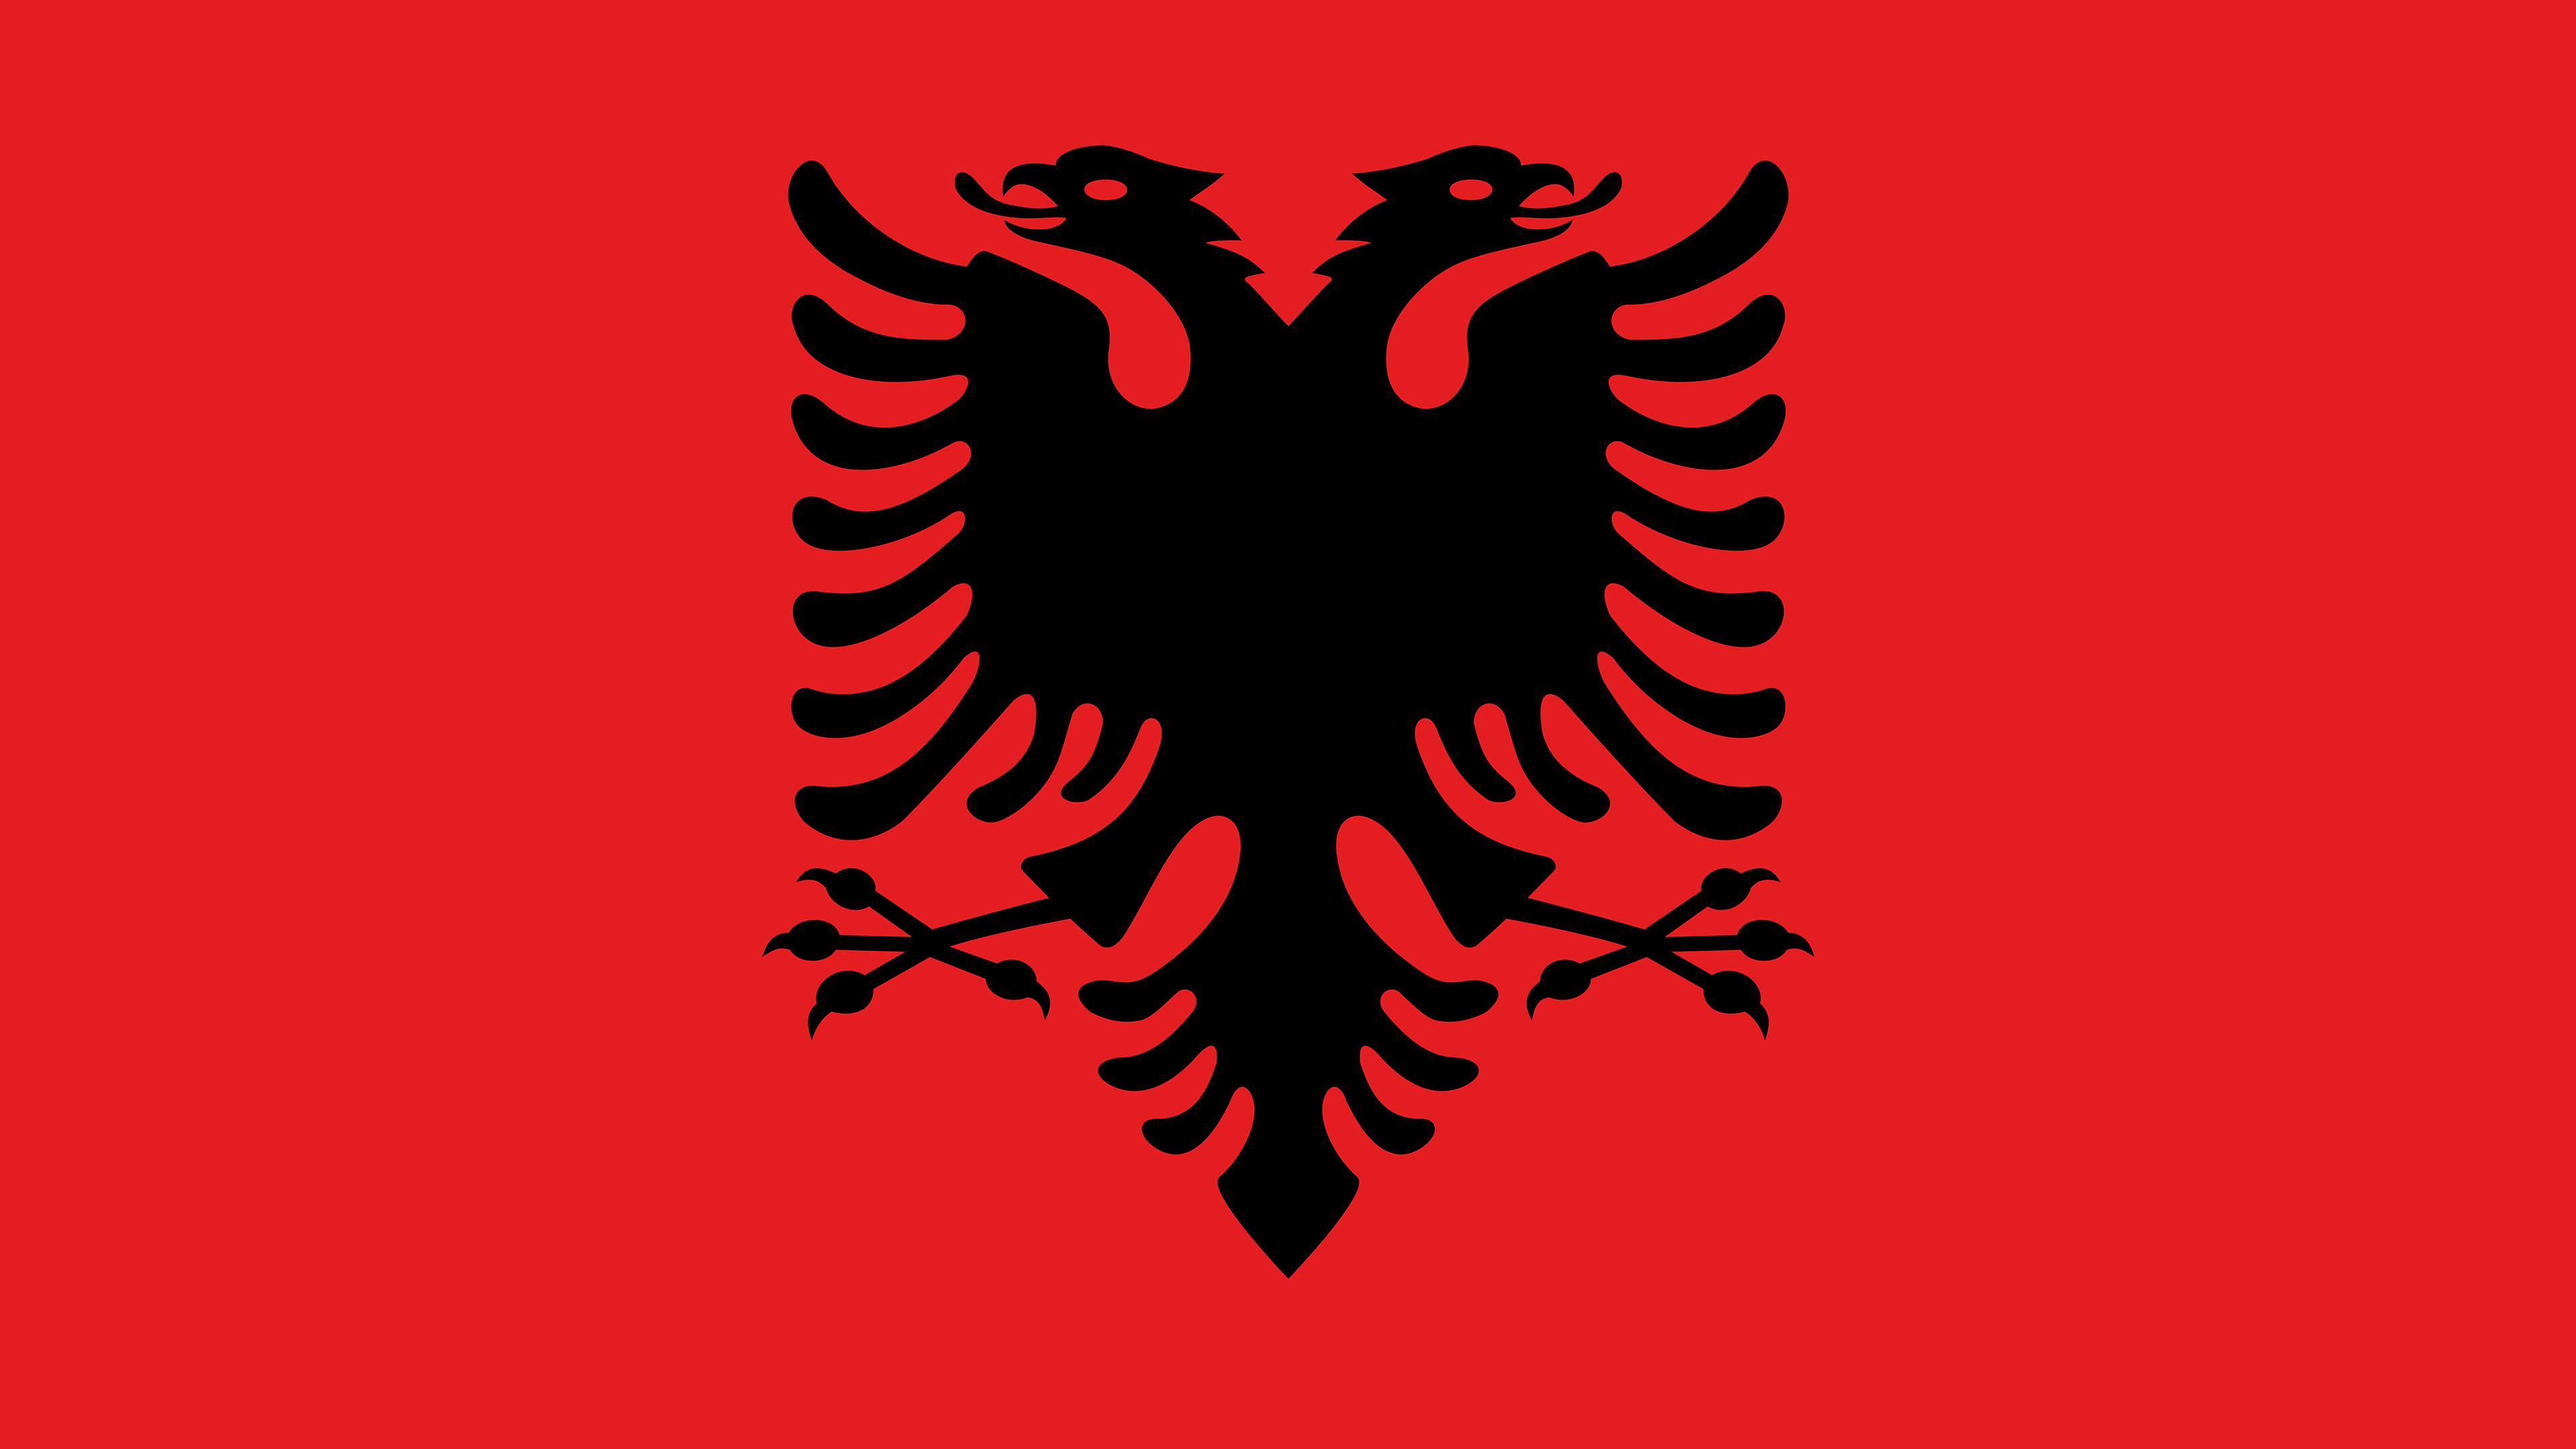 albania flag uhd 4k wallpaper